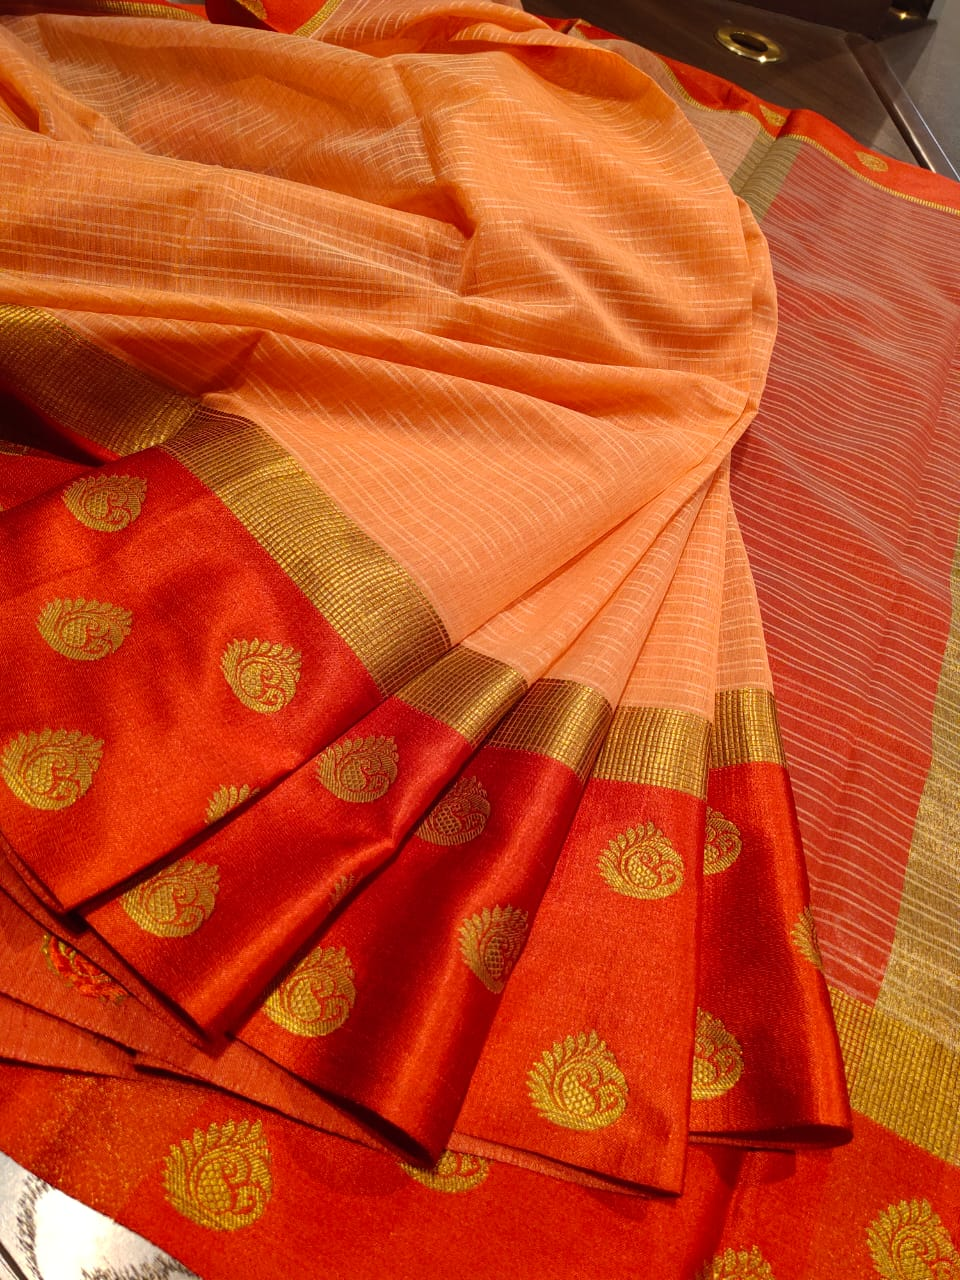 Orange kota saree with red border and golden small border and booties on red border